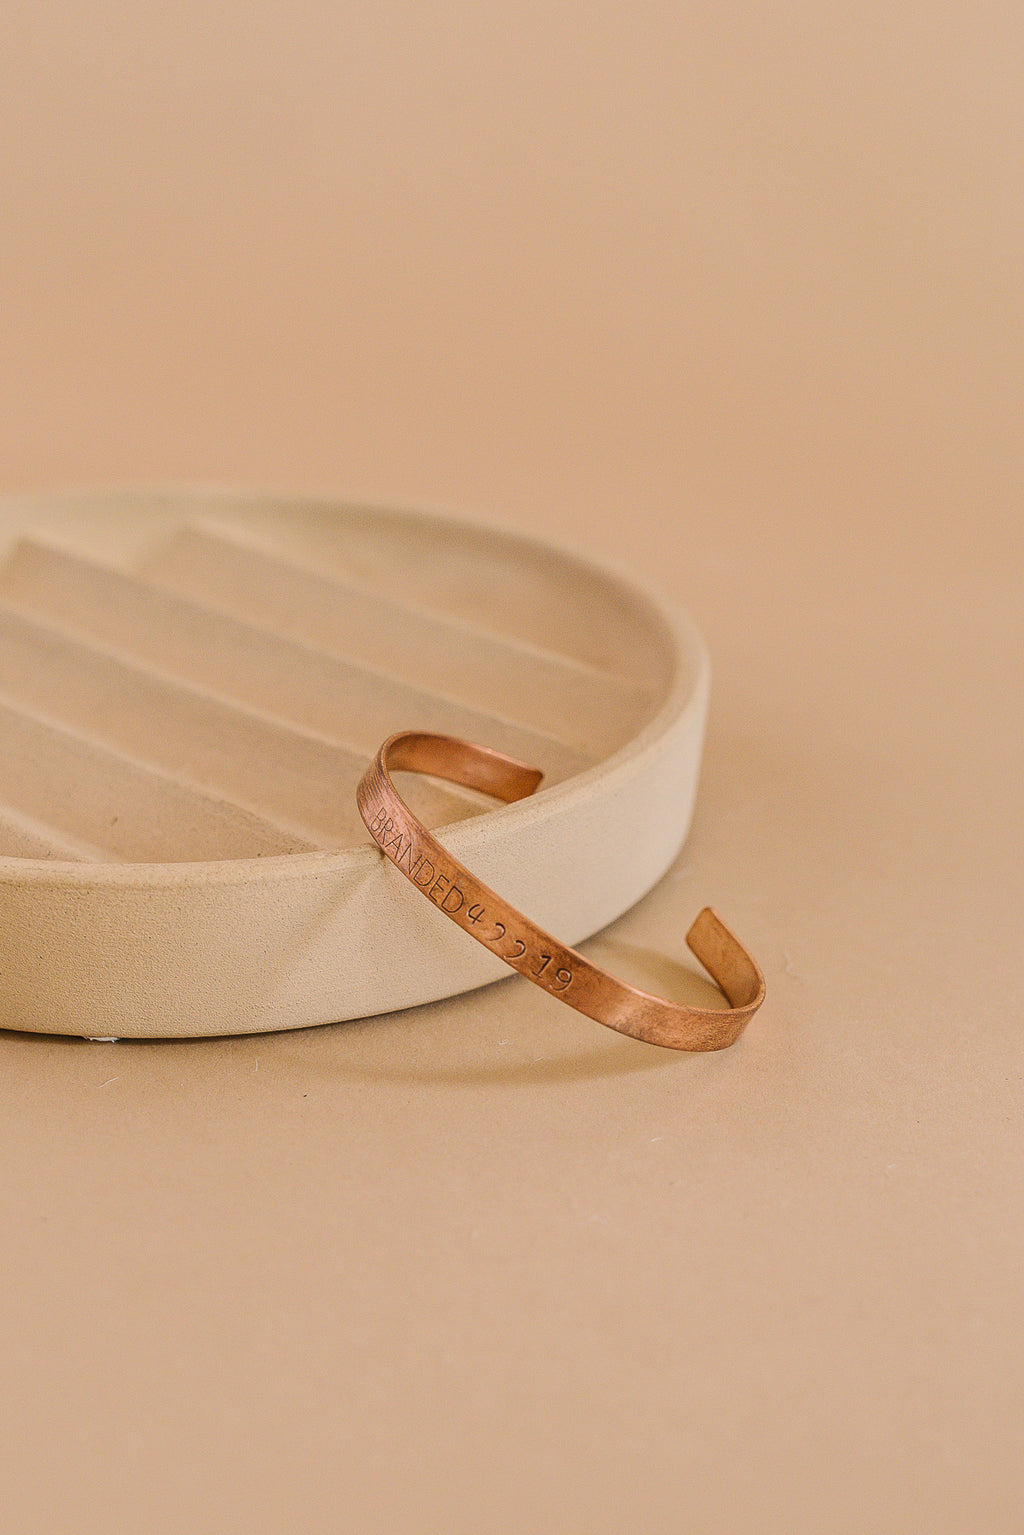 Tiny Copper Branded Cuff